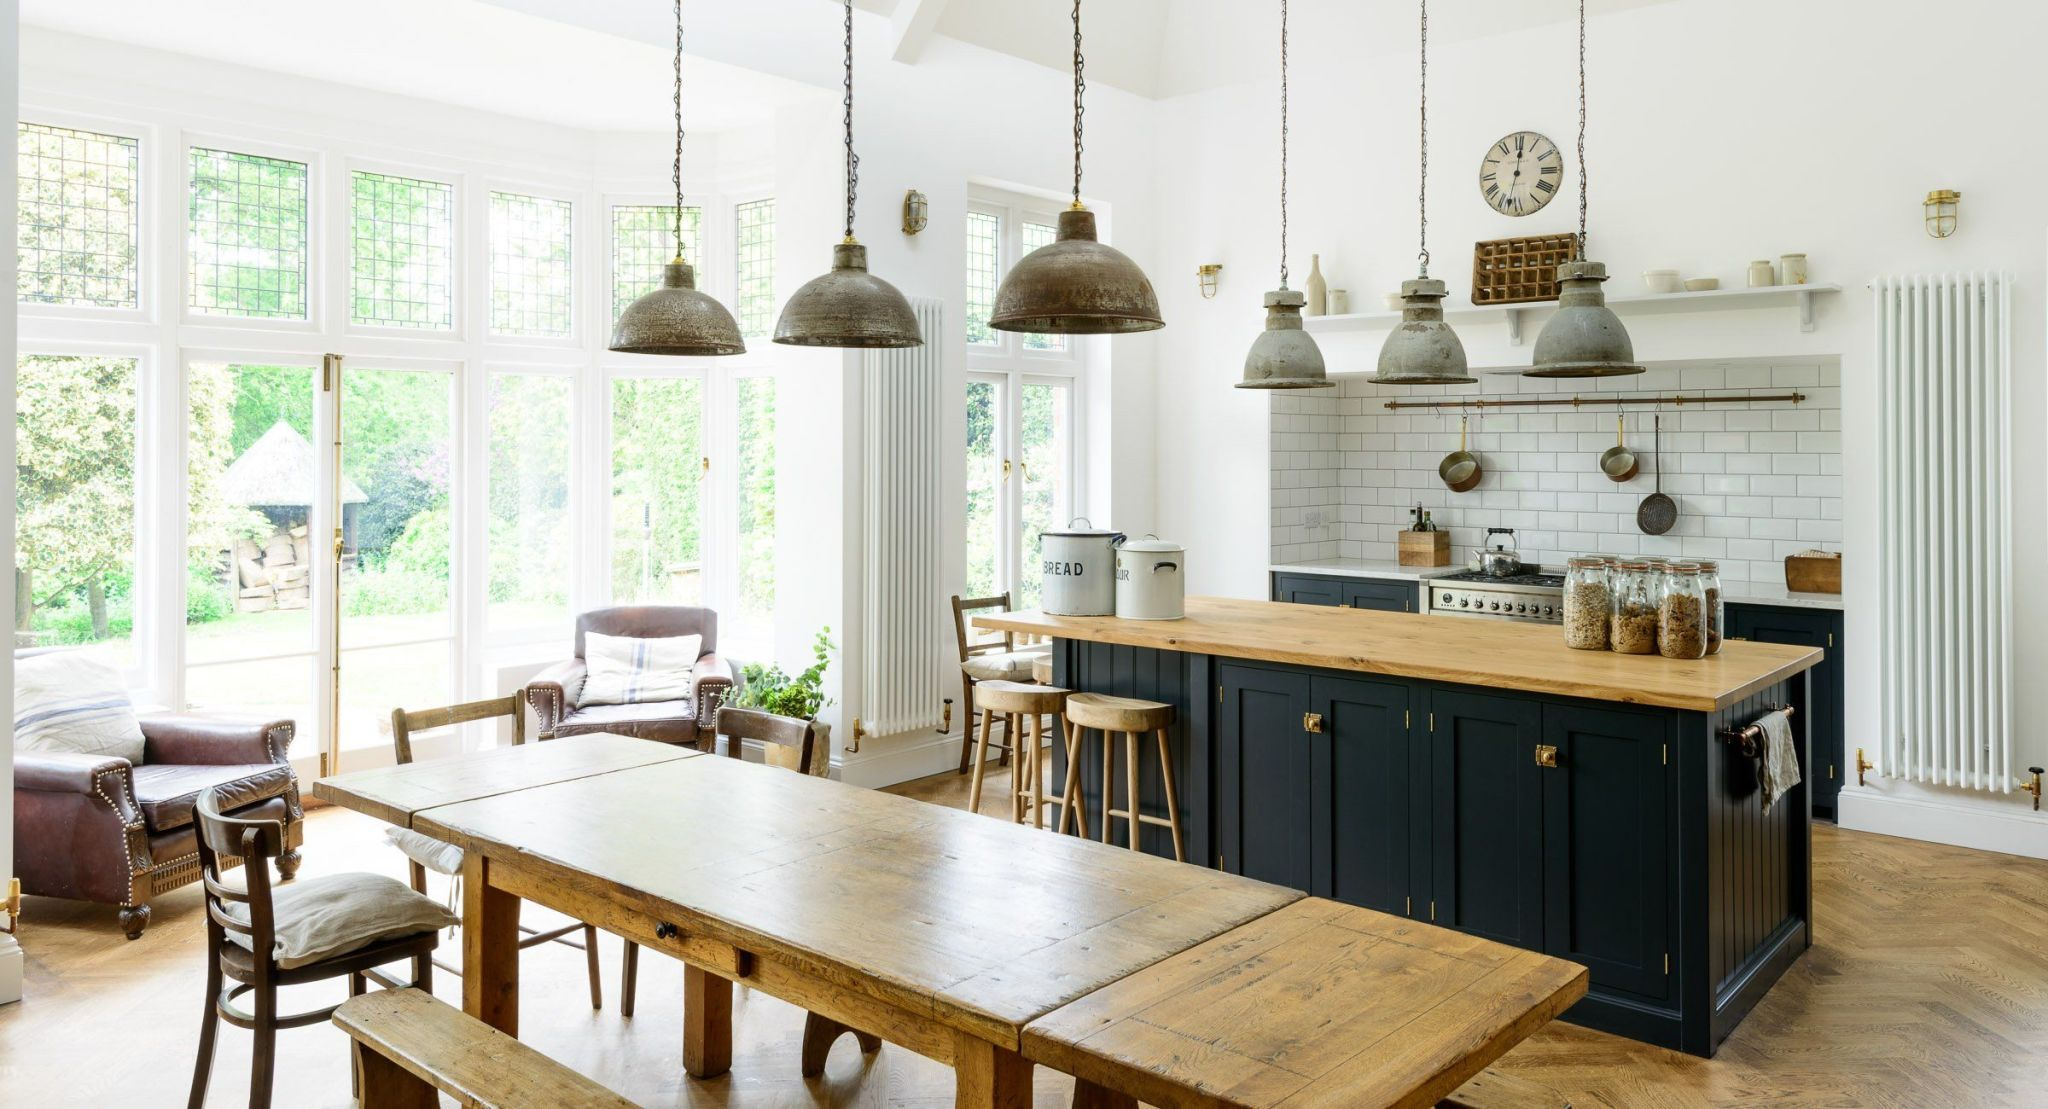 Courtesy Of DeVOL. Modern Rustic Kitchen Decor